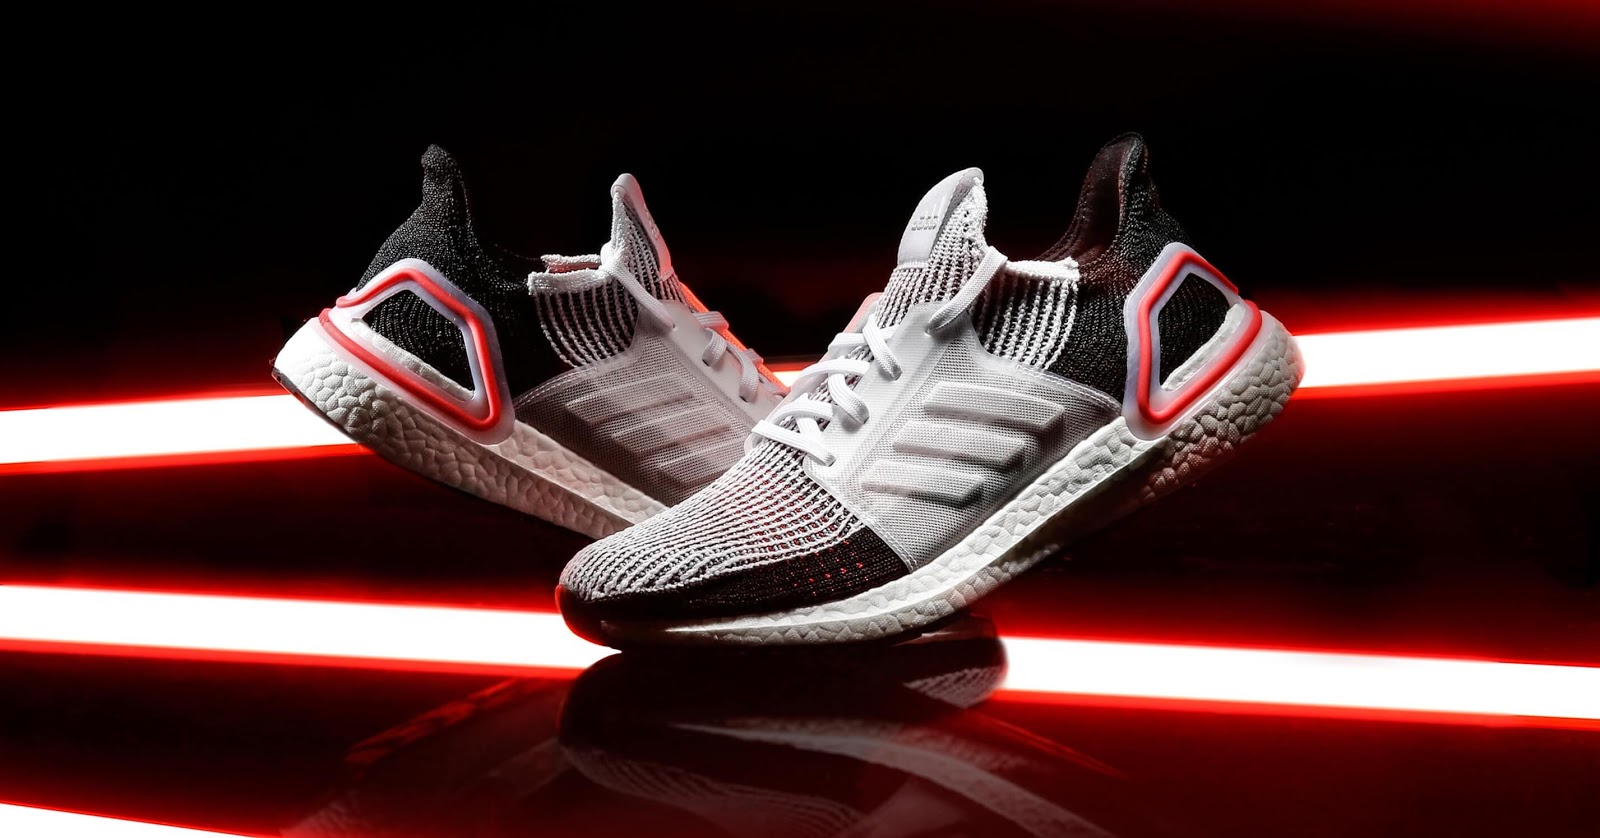 2be55f83f Adidas revealed the new ULTRABOOST 19 this week, the fourth generation of  the Ultra Boost. The first Ultra Boost was released in early 2015.